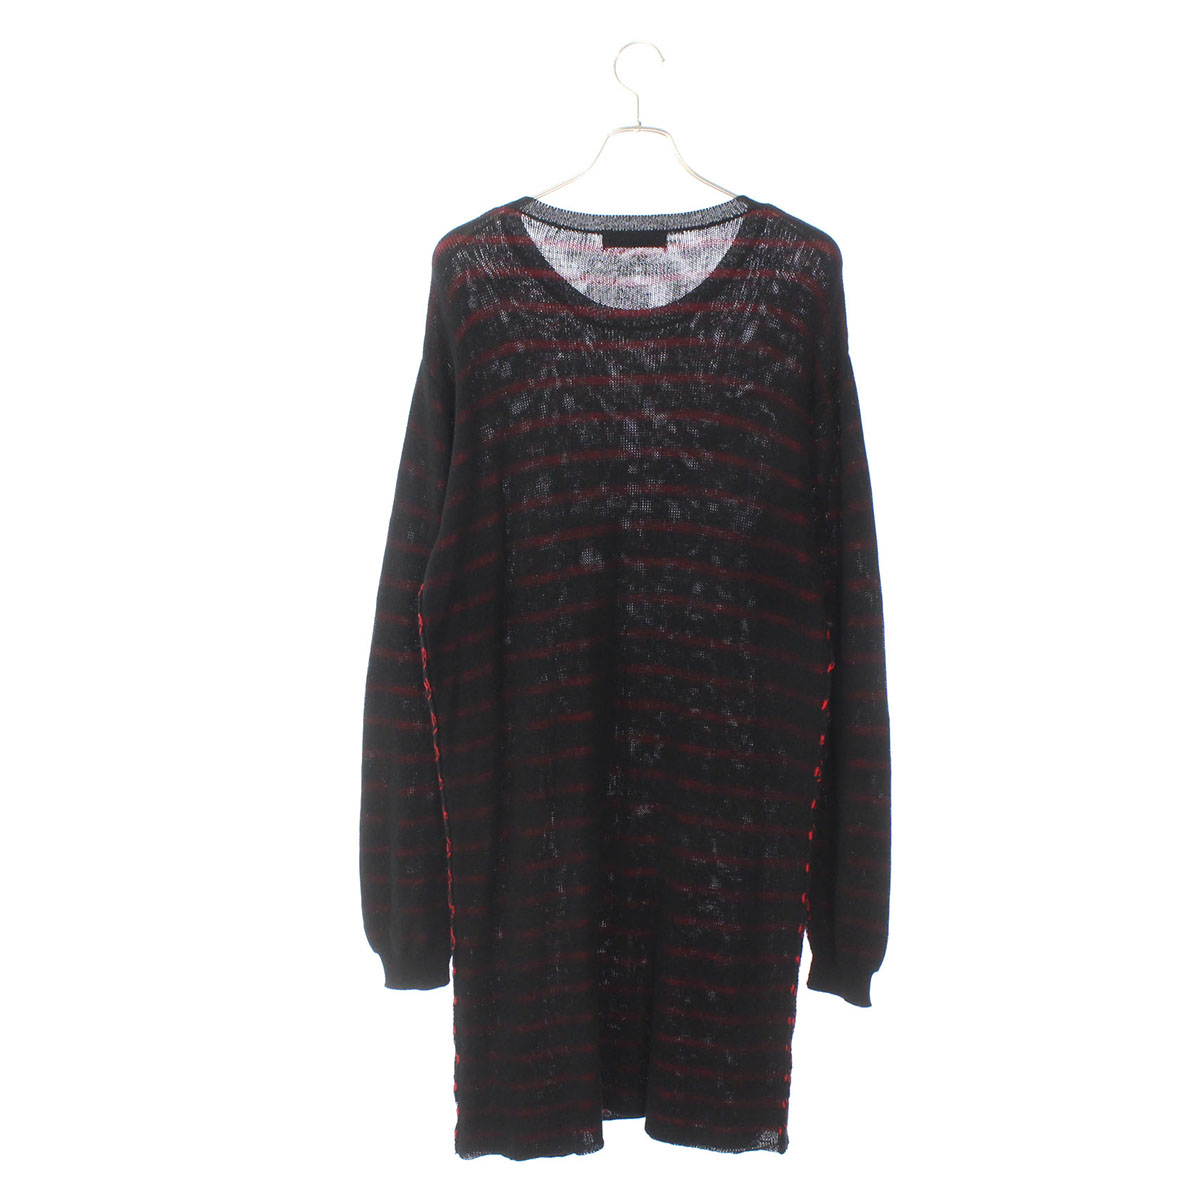 Long boder knit pullover